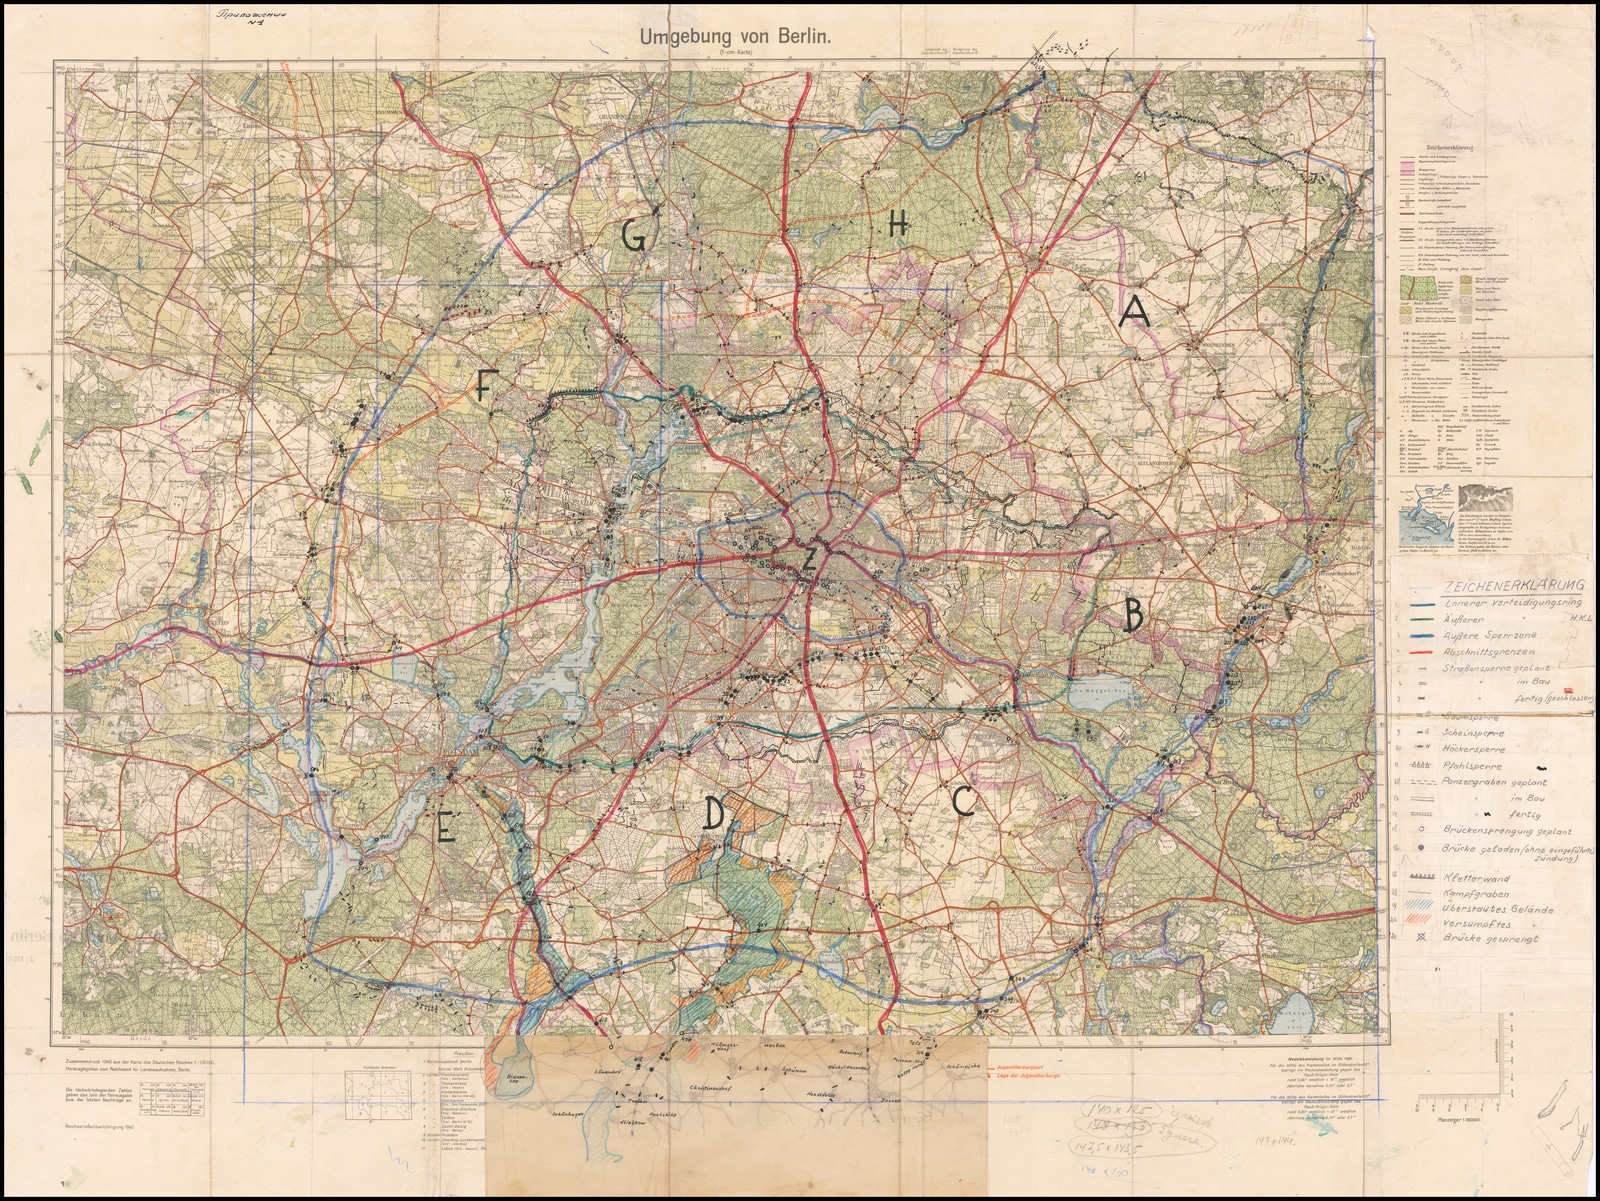 Berlin's defensive zones for the Battle of Berlin